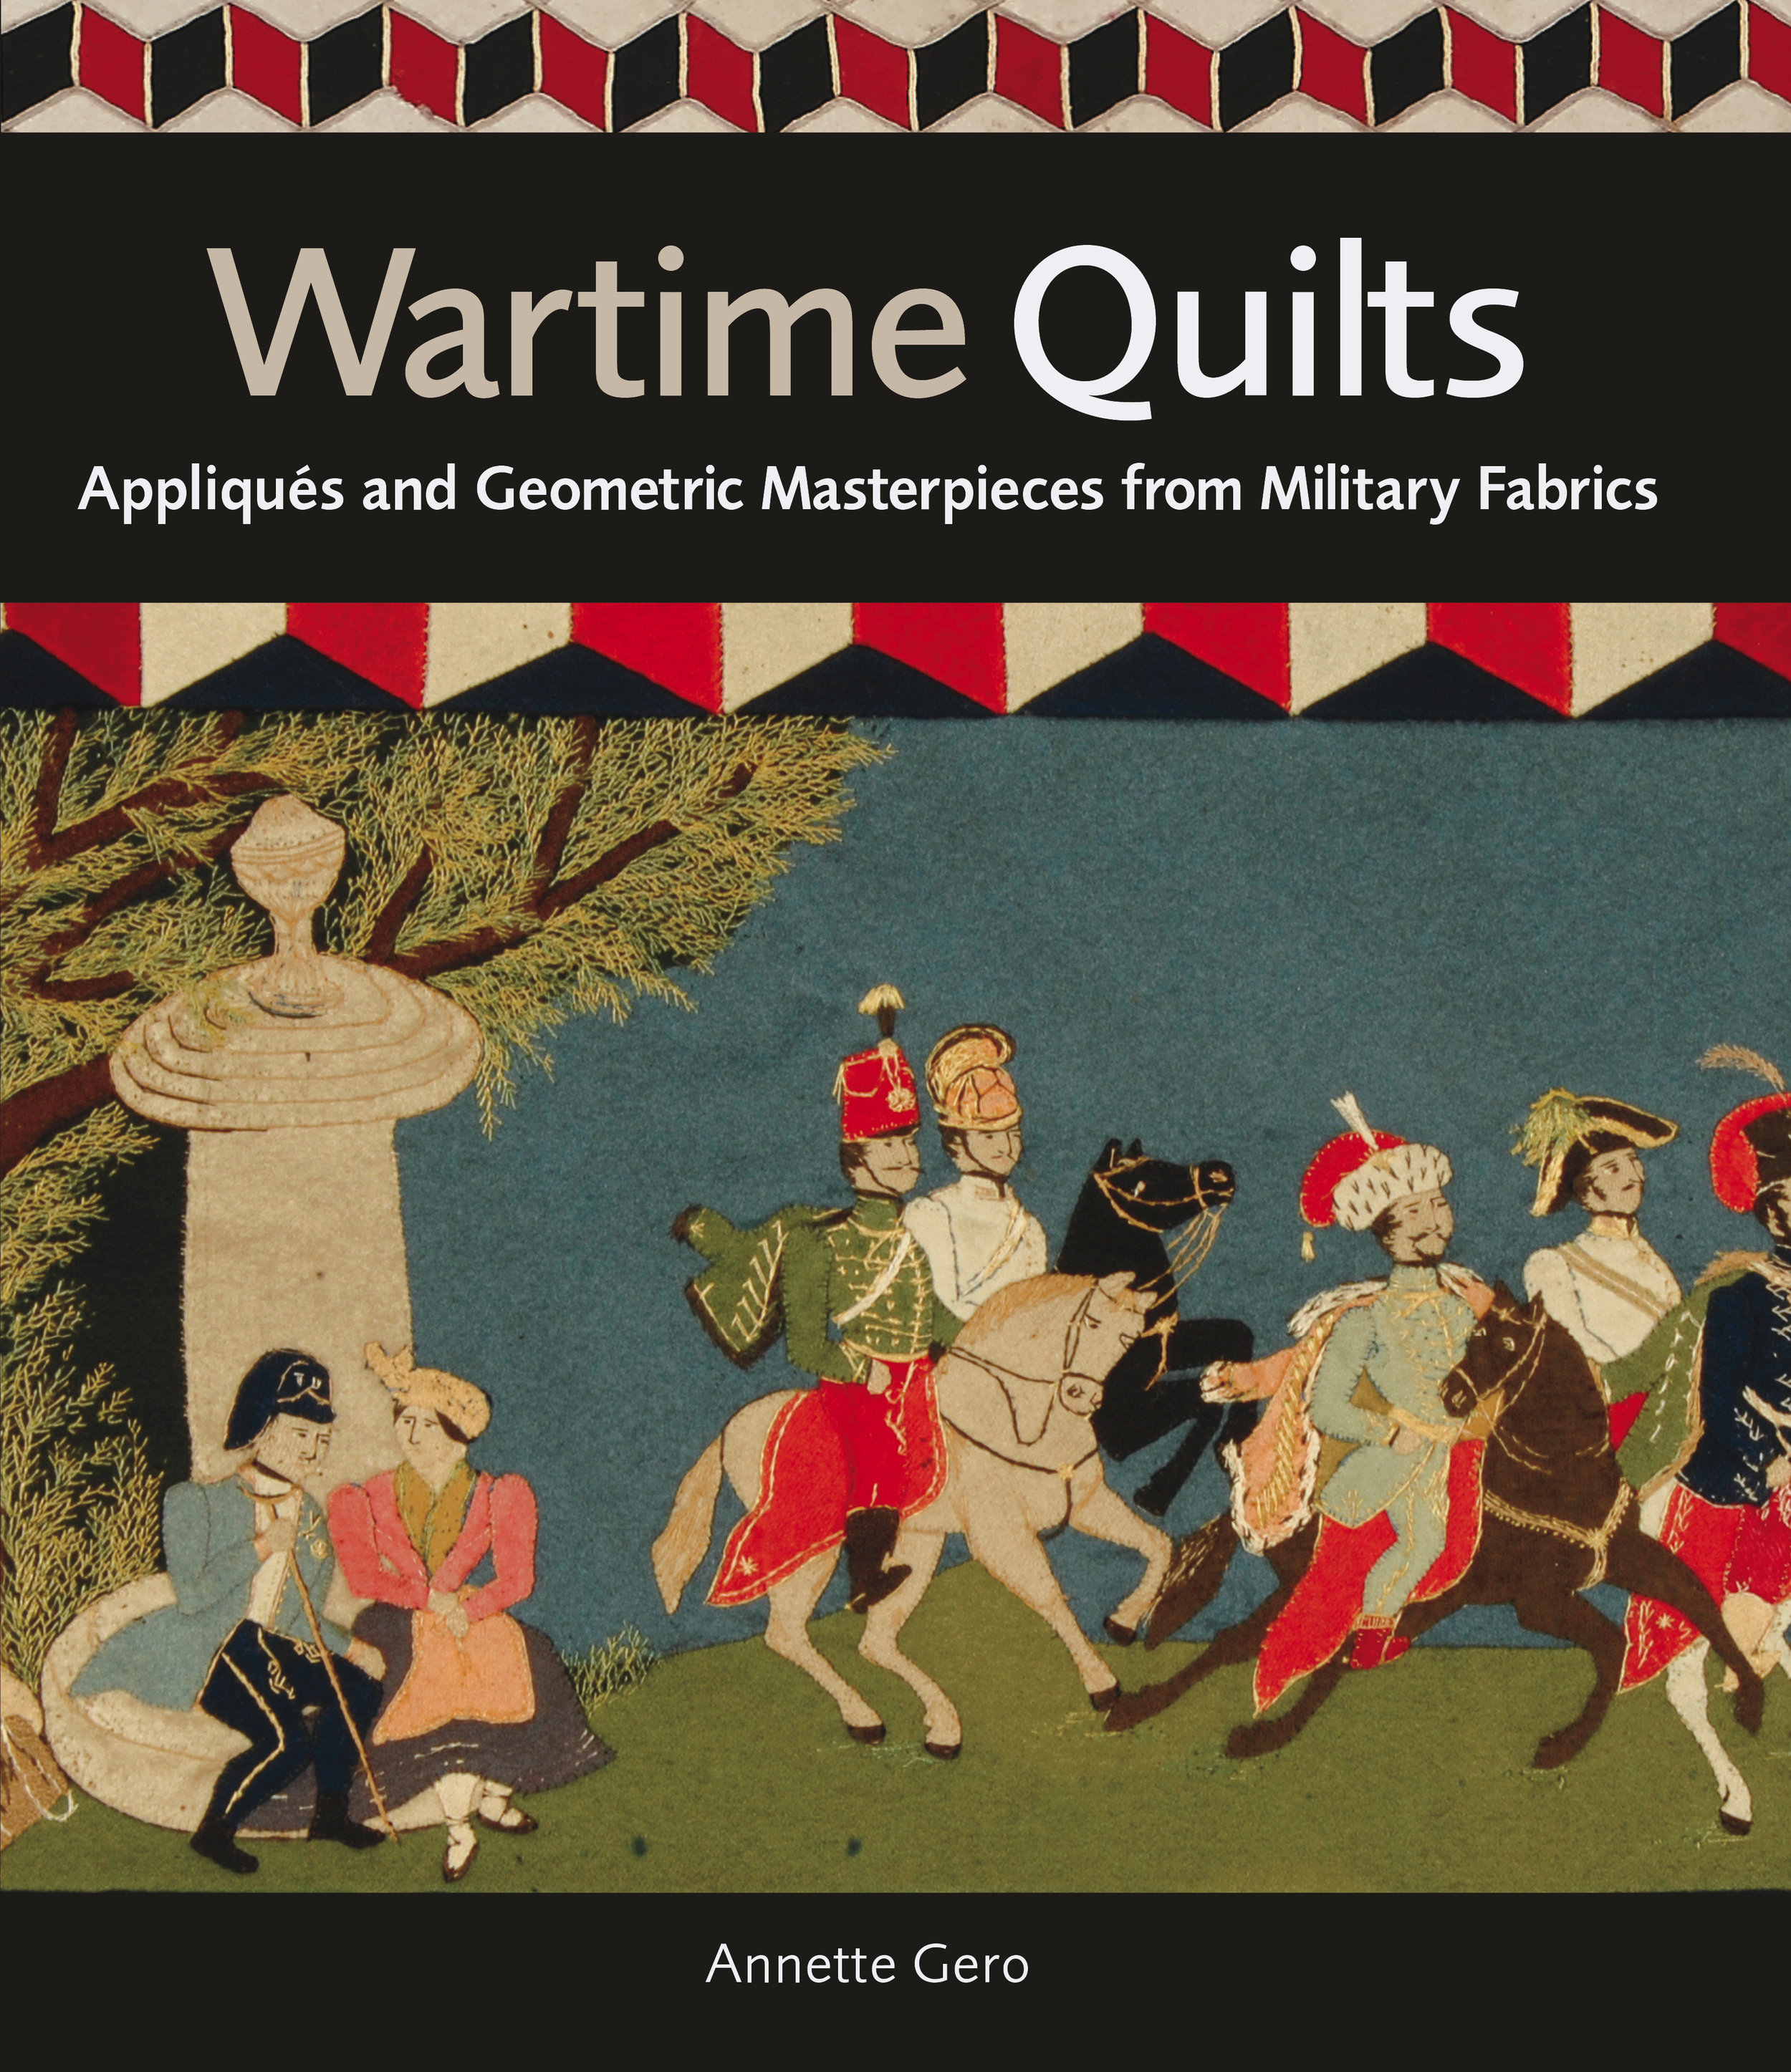 BP WAR QUILT cover.jpg